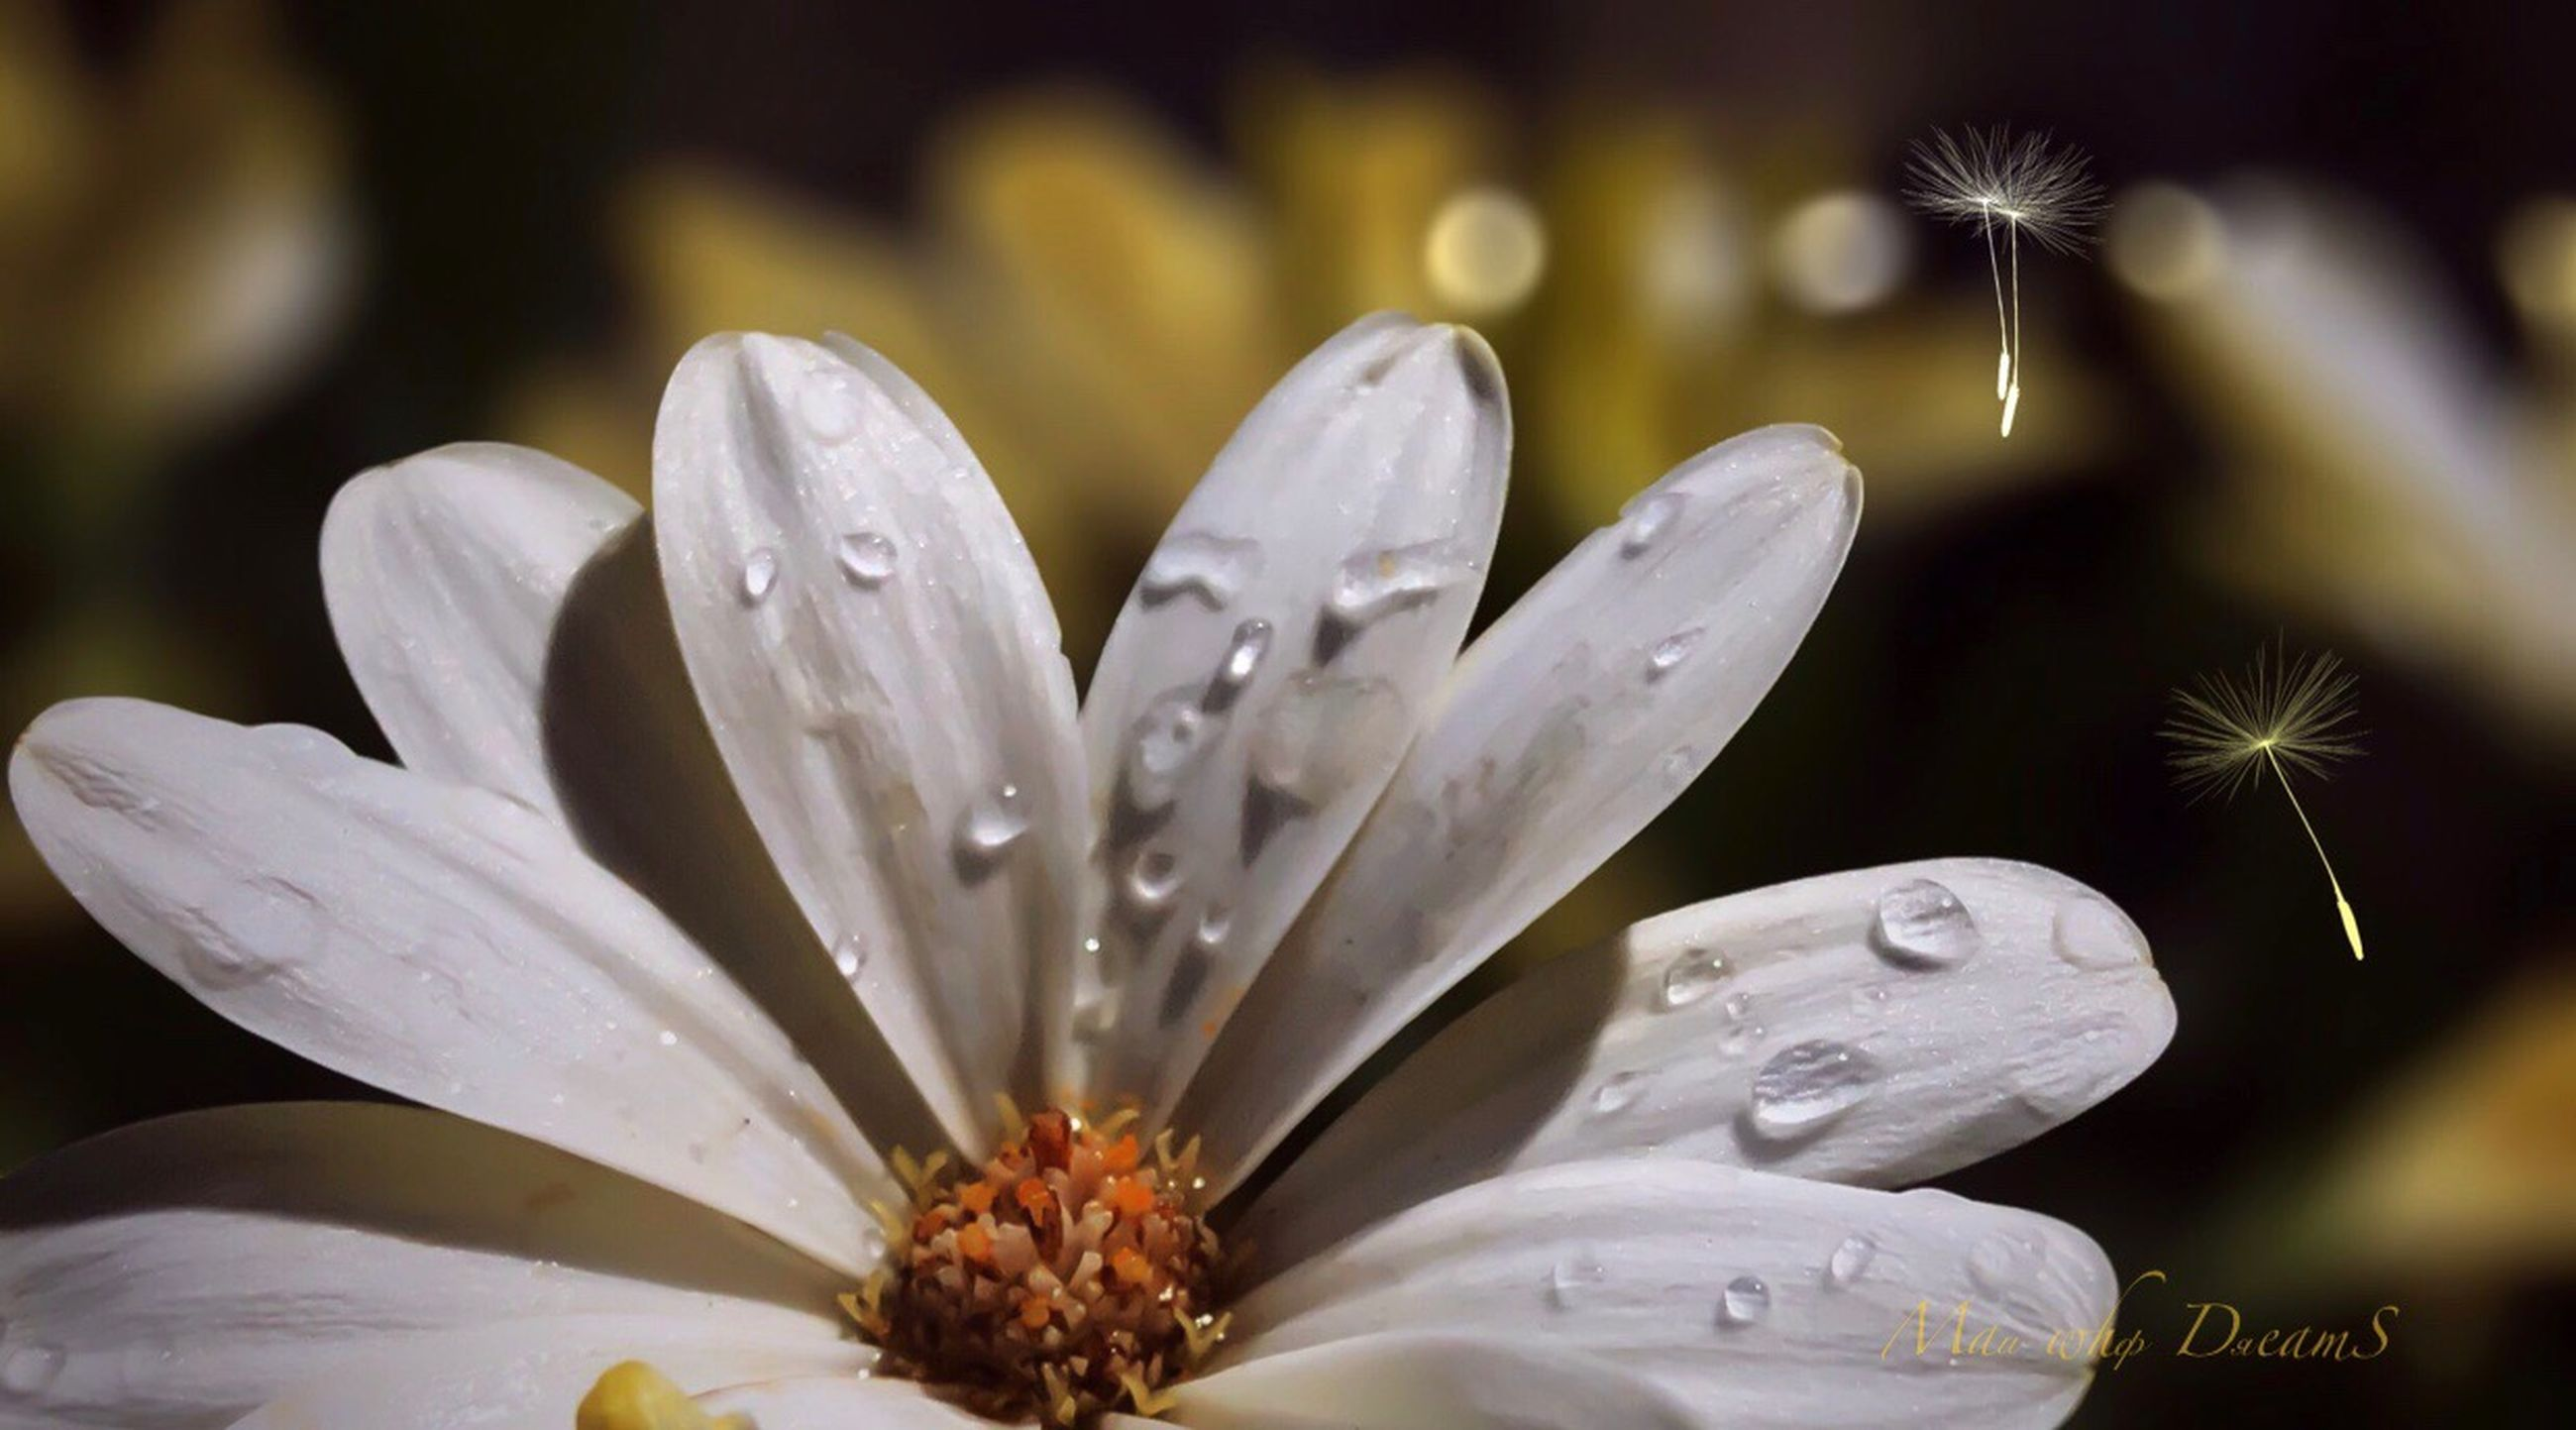 flowering plant, flower, vulnerability, fragility, petal, plant, growth, beauty in nature, freshness, drop, flower head, inflorescence, close-up, water, wet, pollen, white color, focus on foreground, no people, softness, raindrop, dew, purity